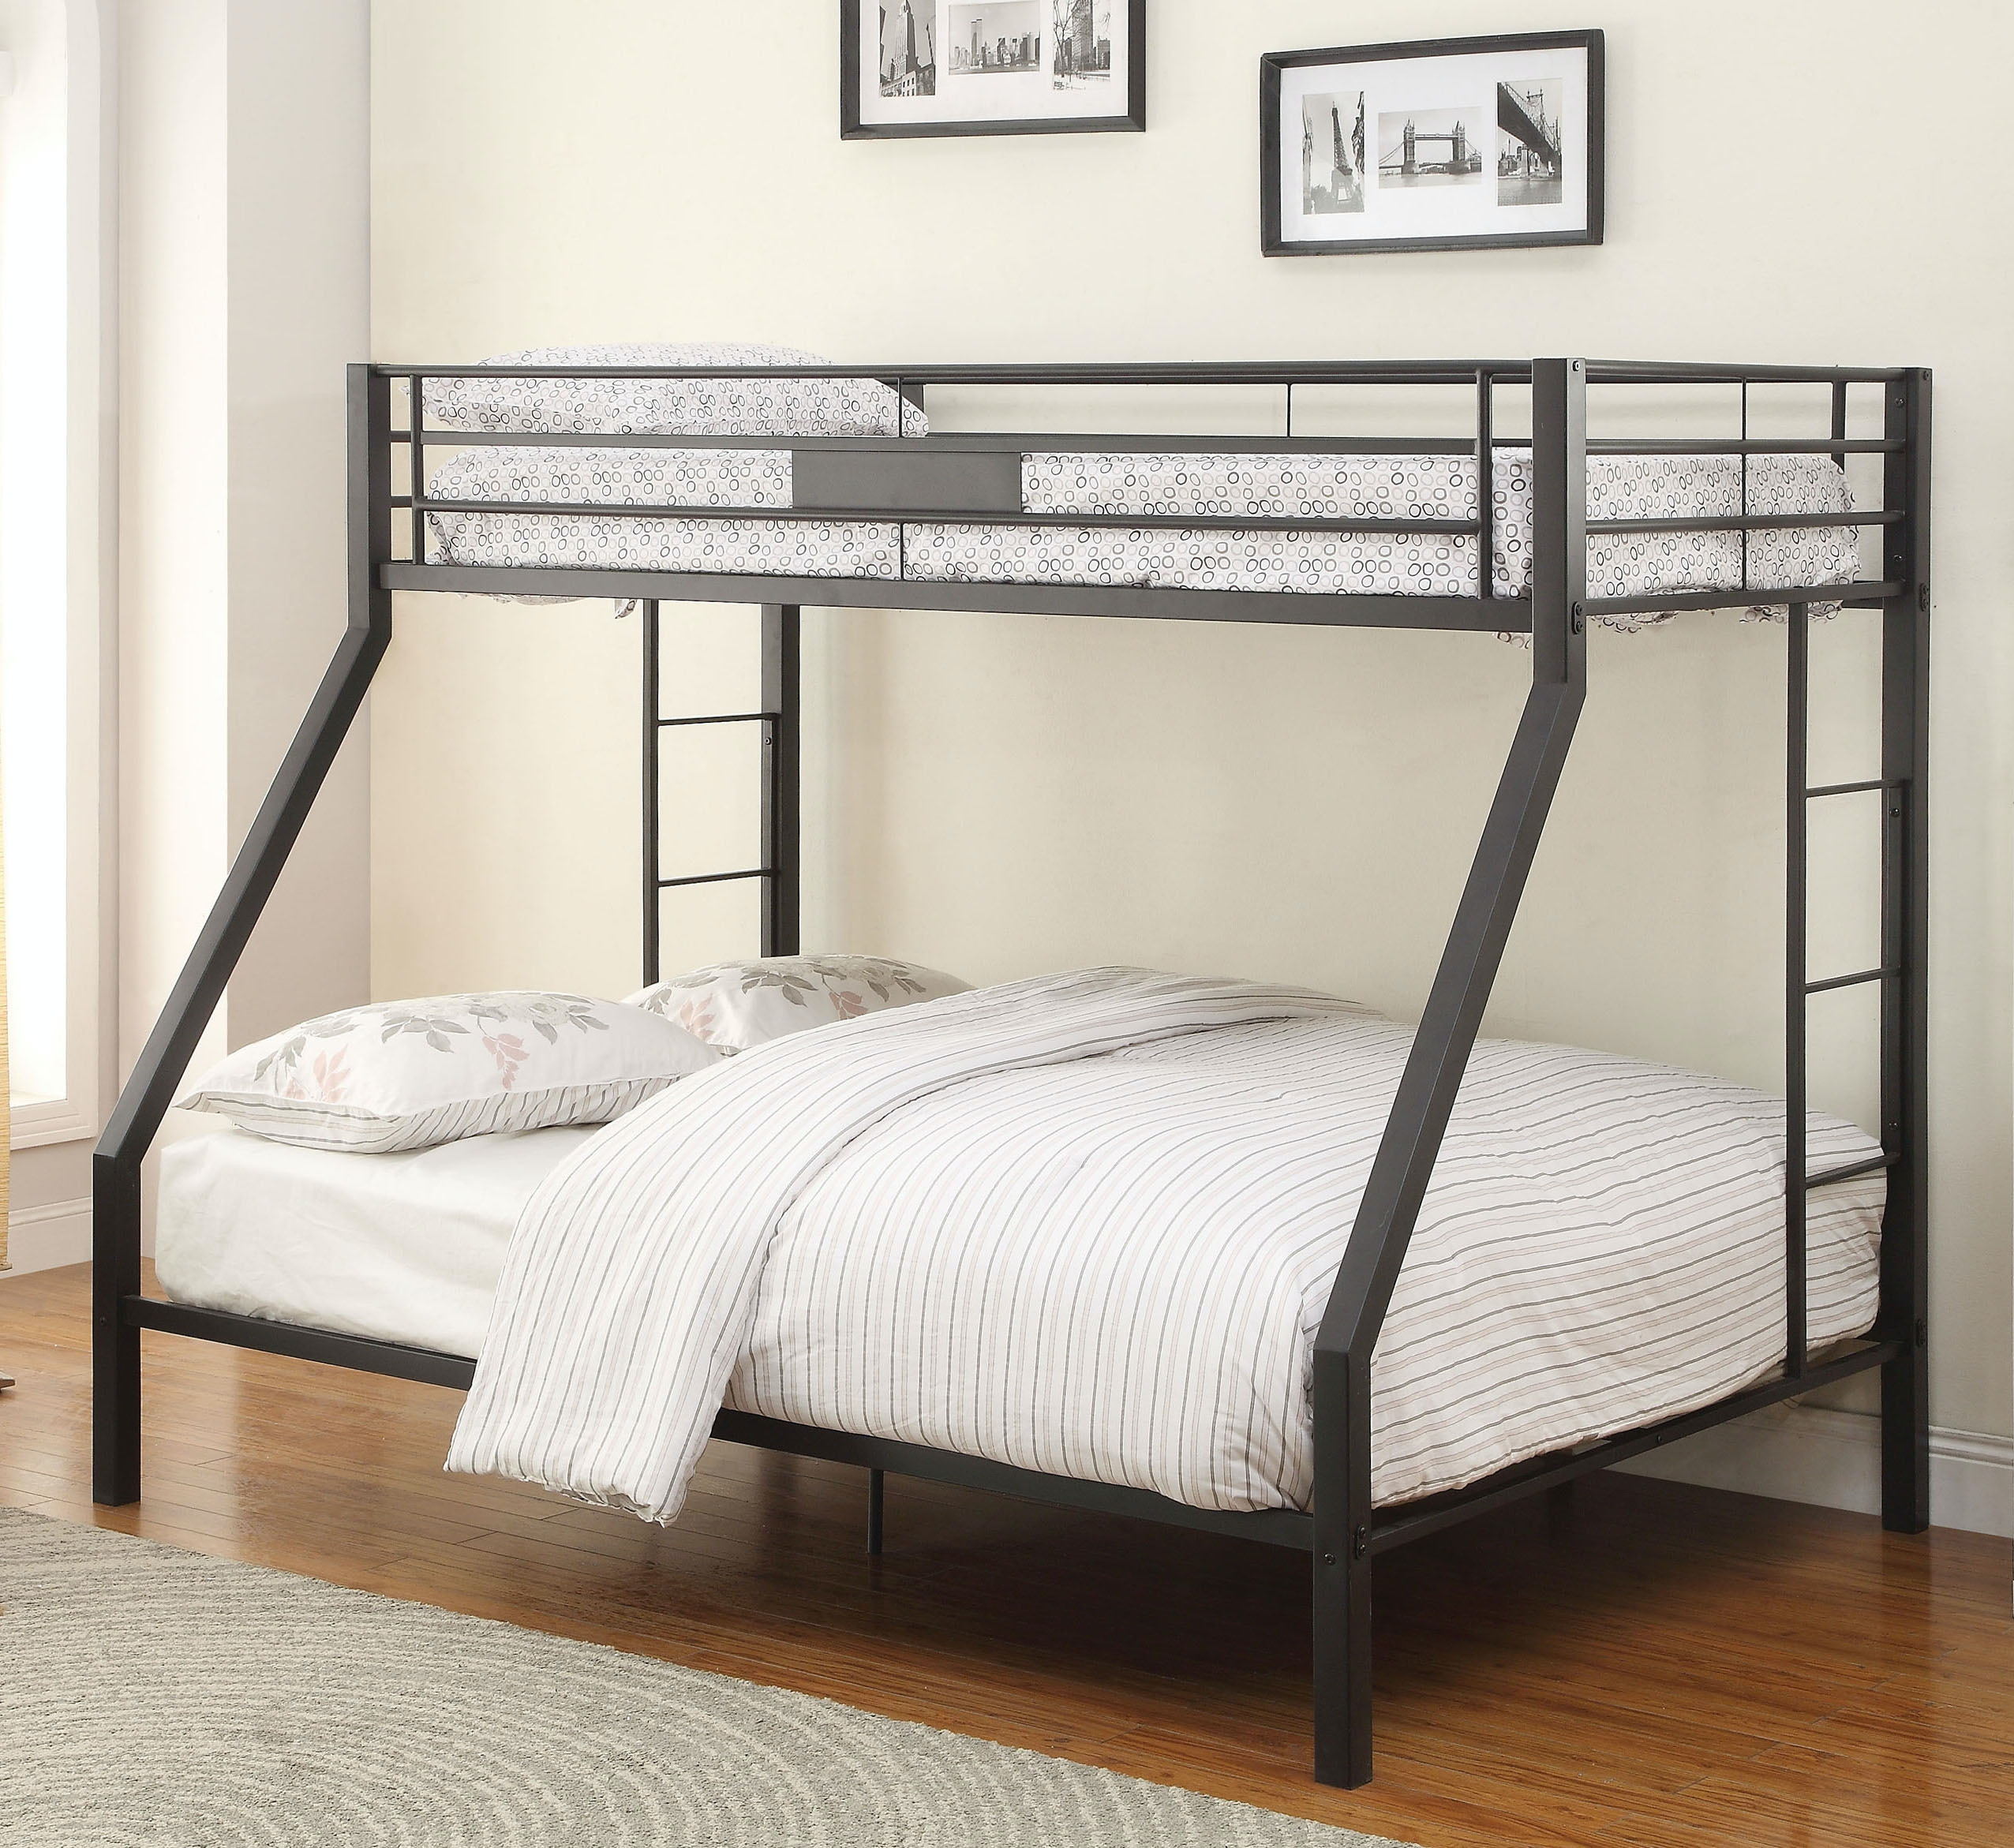 Acme Furniture Limbra Twin XL Over Queen Bunk Bed 38000